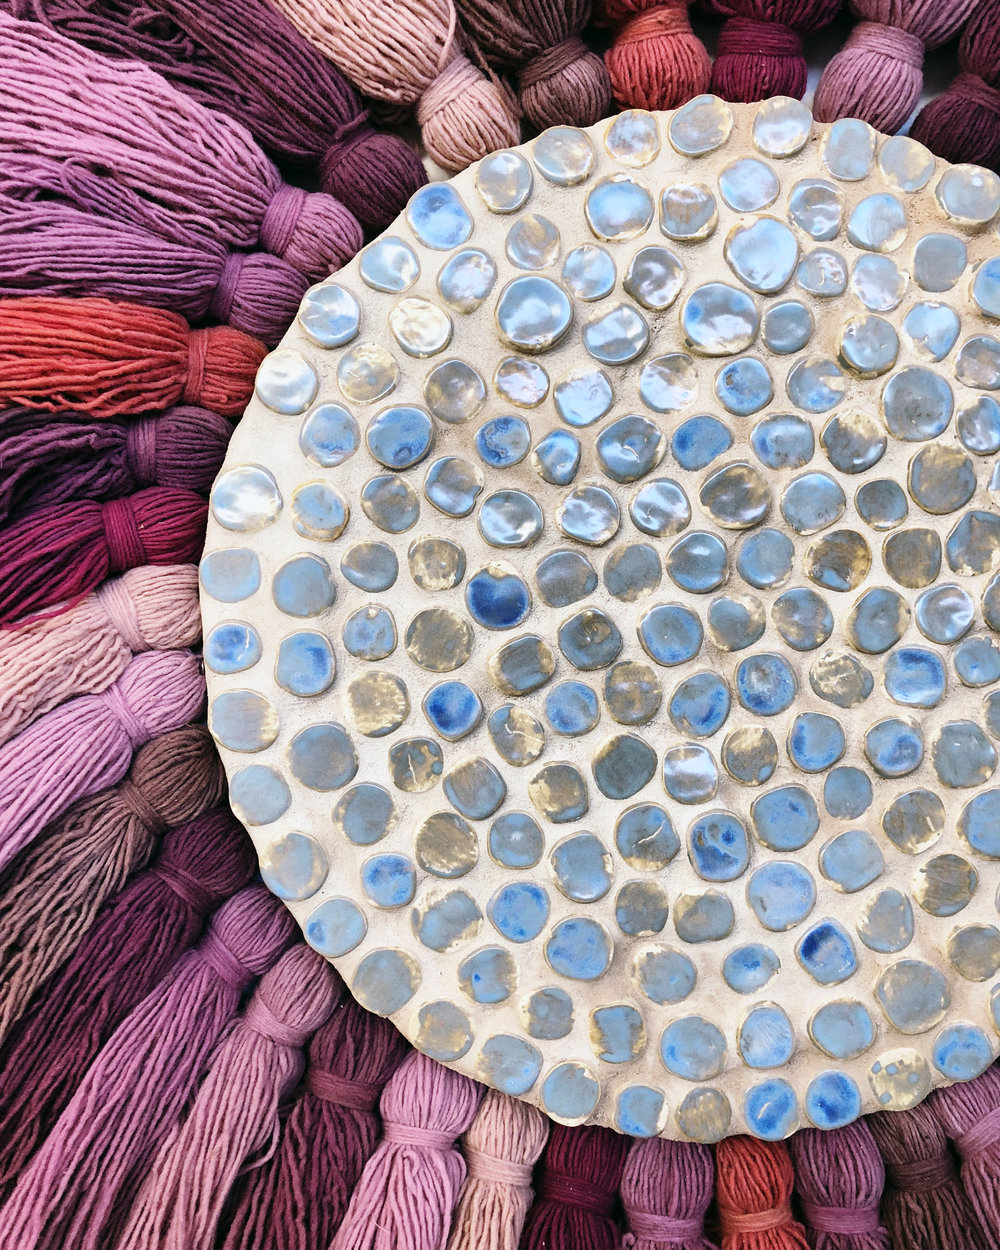 Continuum (detail)  , 2018, wool, porcelain, sand on wood panel, 46 inches in diameter